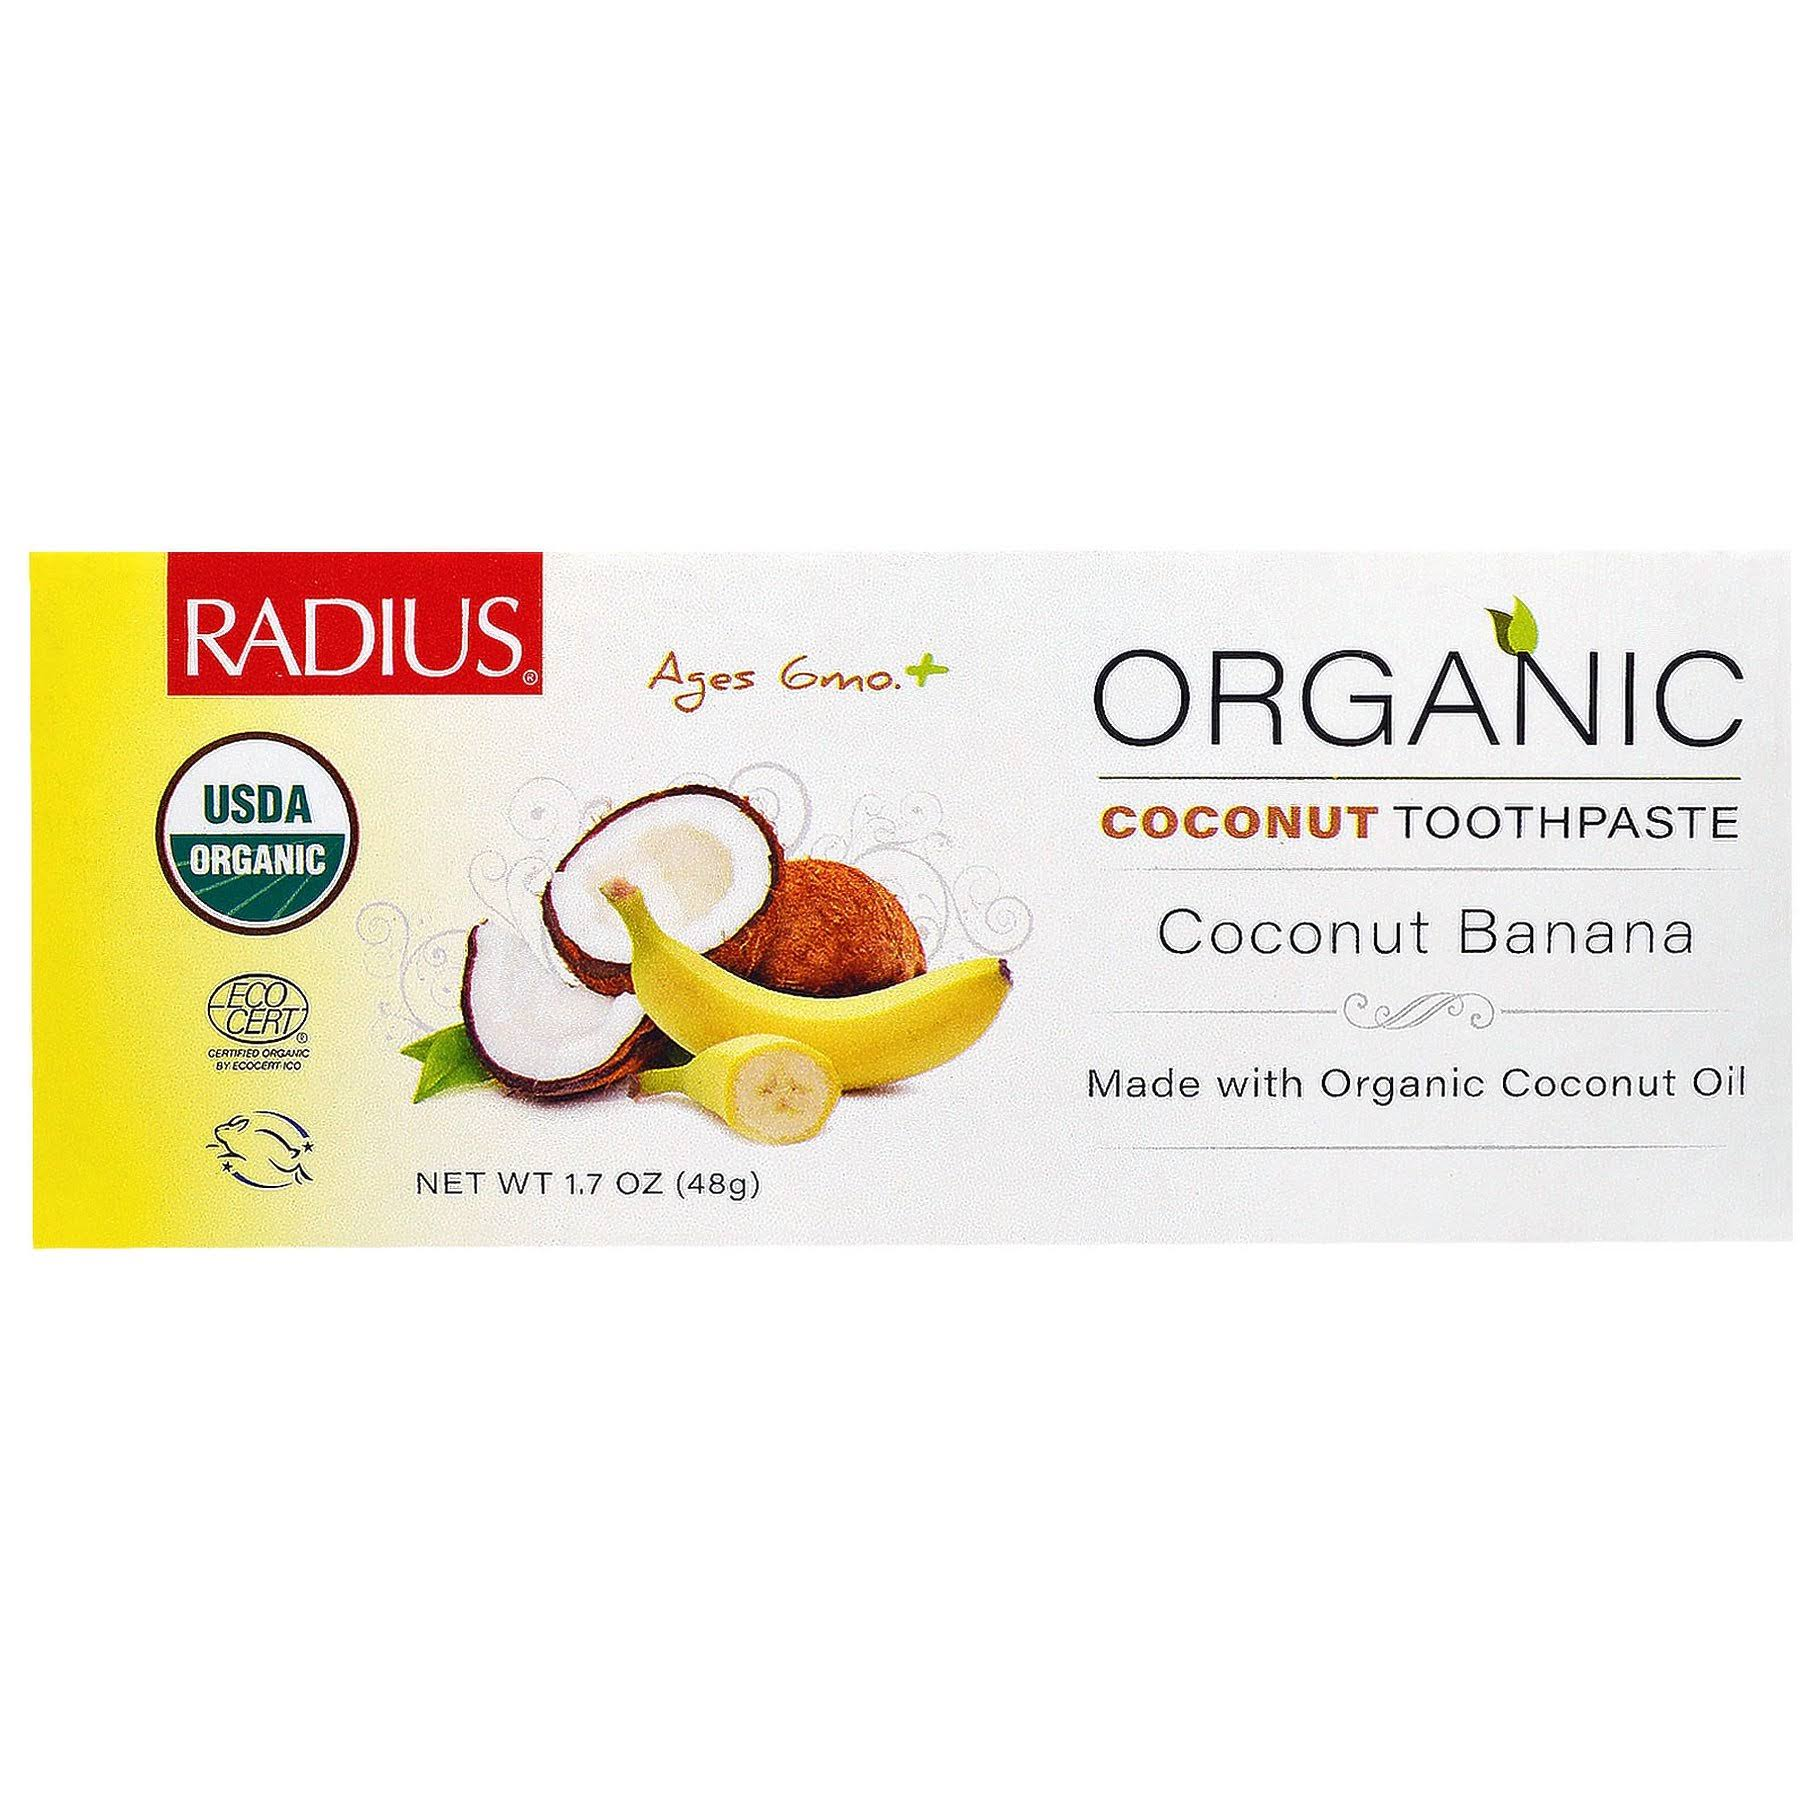 Radius Organic Children's Toothpaste - Coconut Oil and Banana, 1.7oz